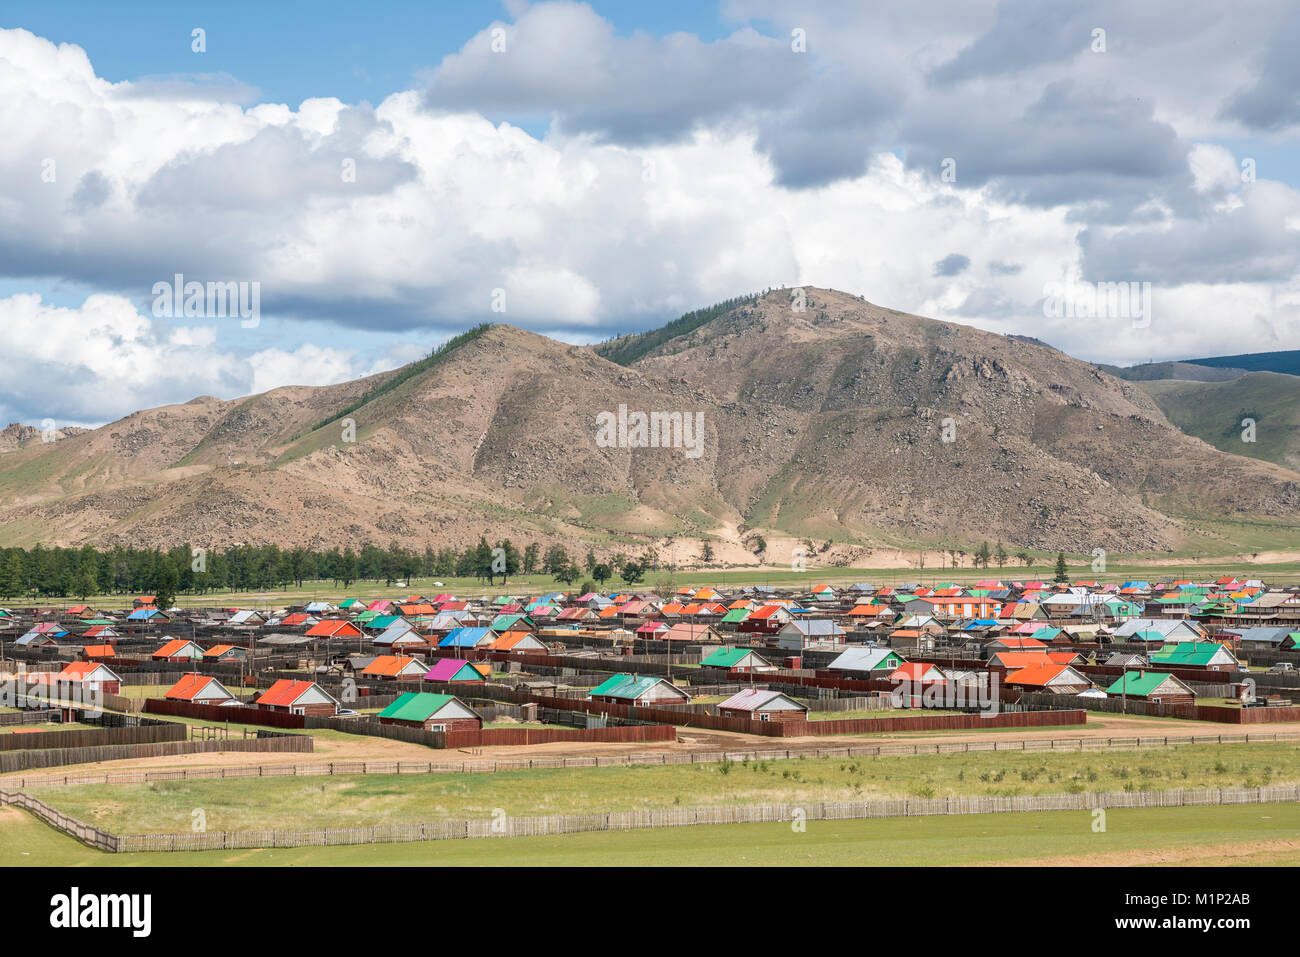 The town of Orgil, Jargalant district, Hovsgol province, Mongolia, Central Asia, Asia - Stock Image